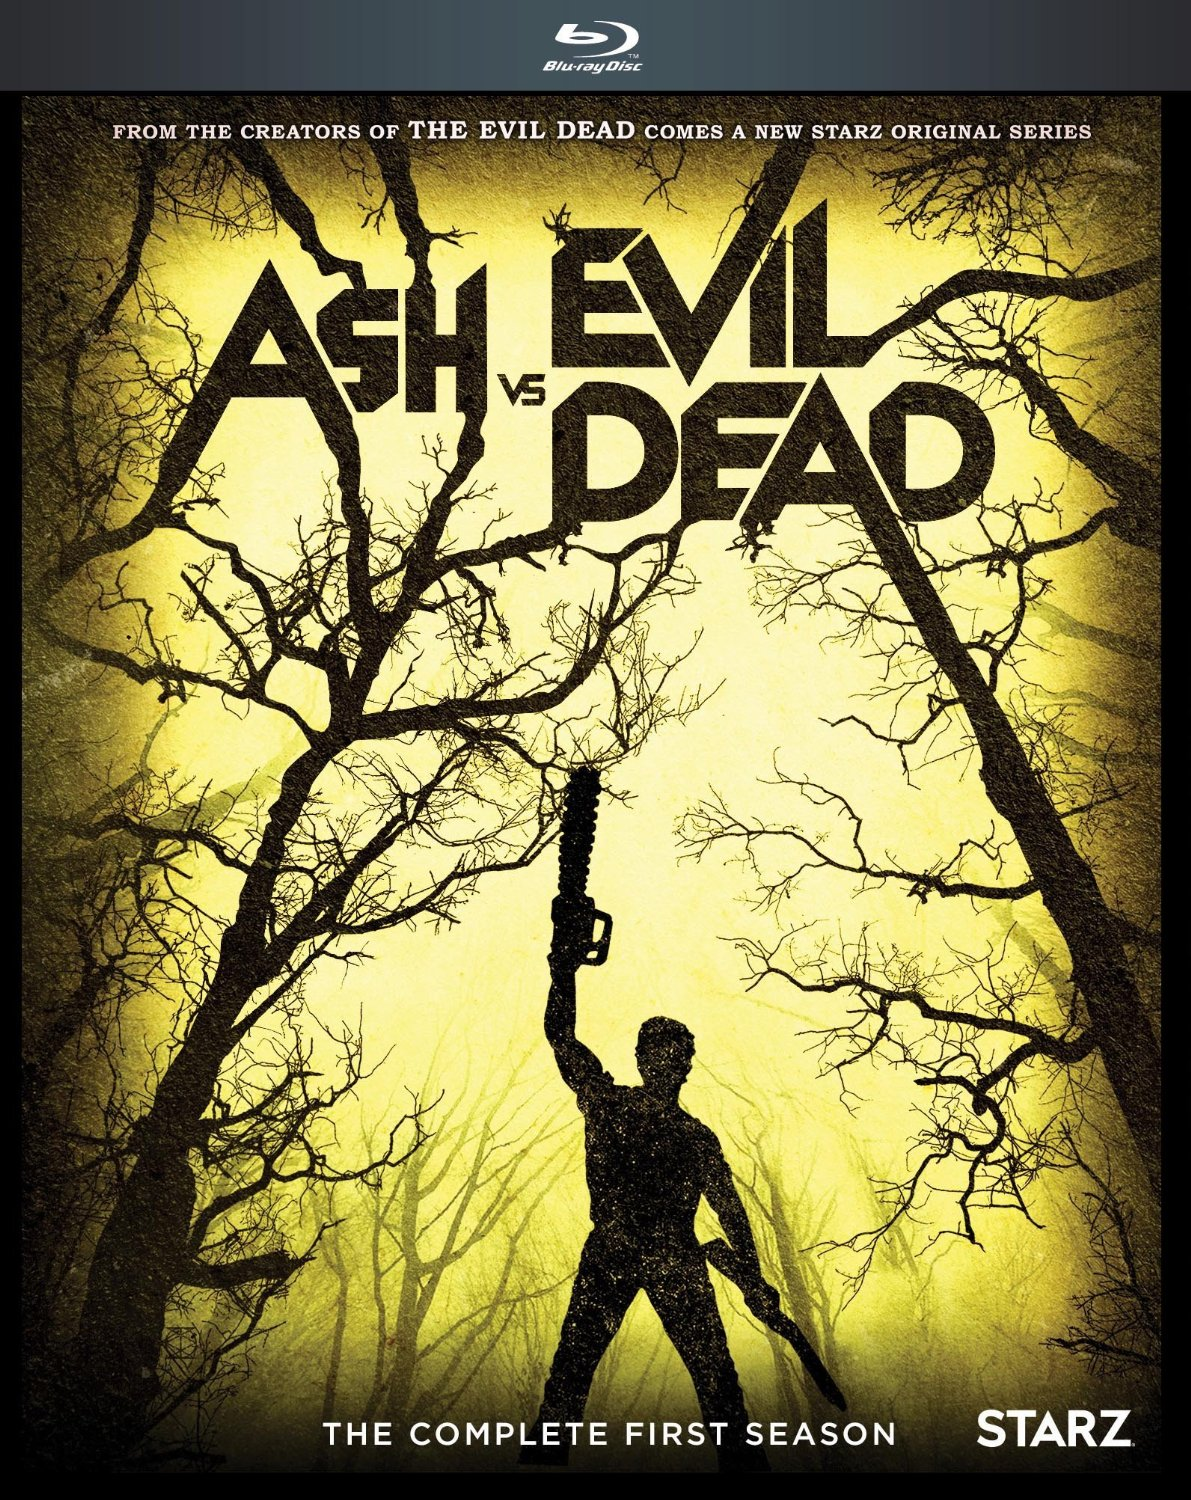 Evil Dead [Movie] - Ash Vs Evil Dead: Season 1